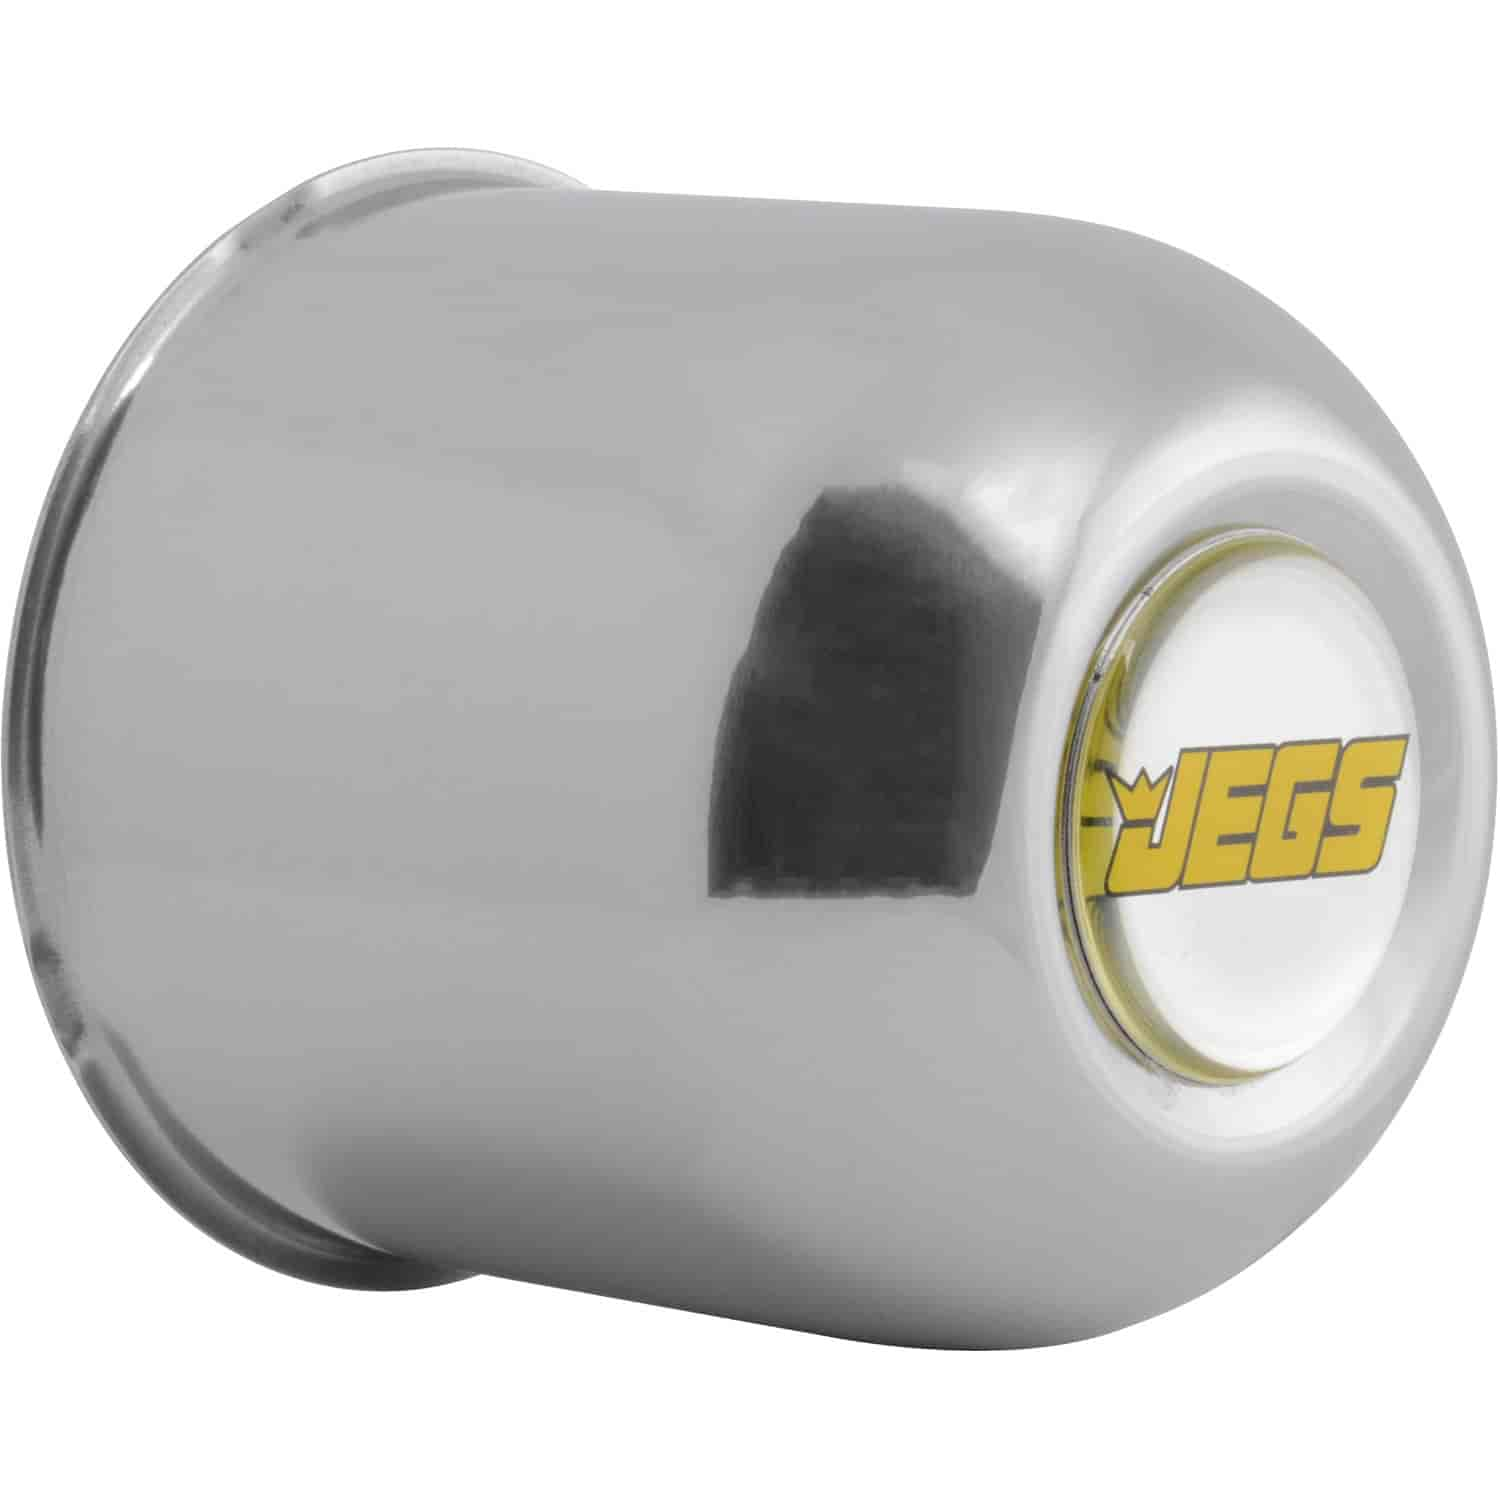 JEGS Performance Products 671020 - JEGS 'D' Window Steel Wheels